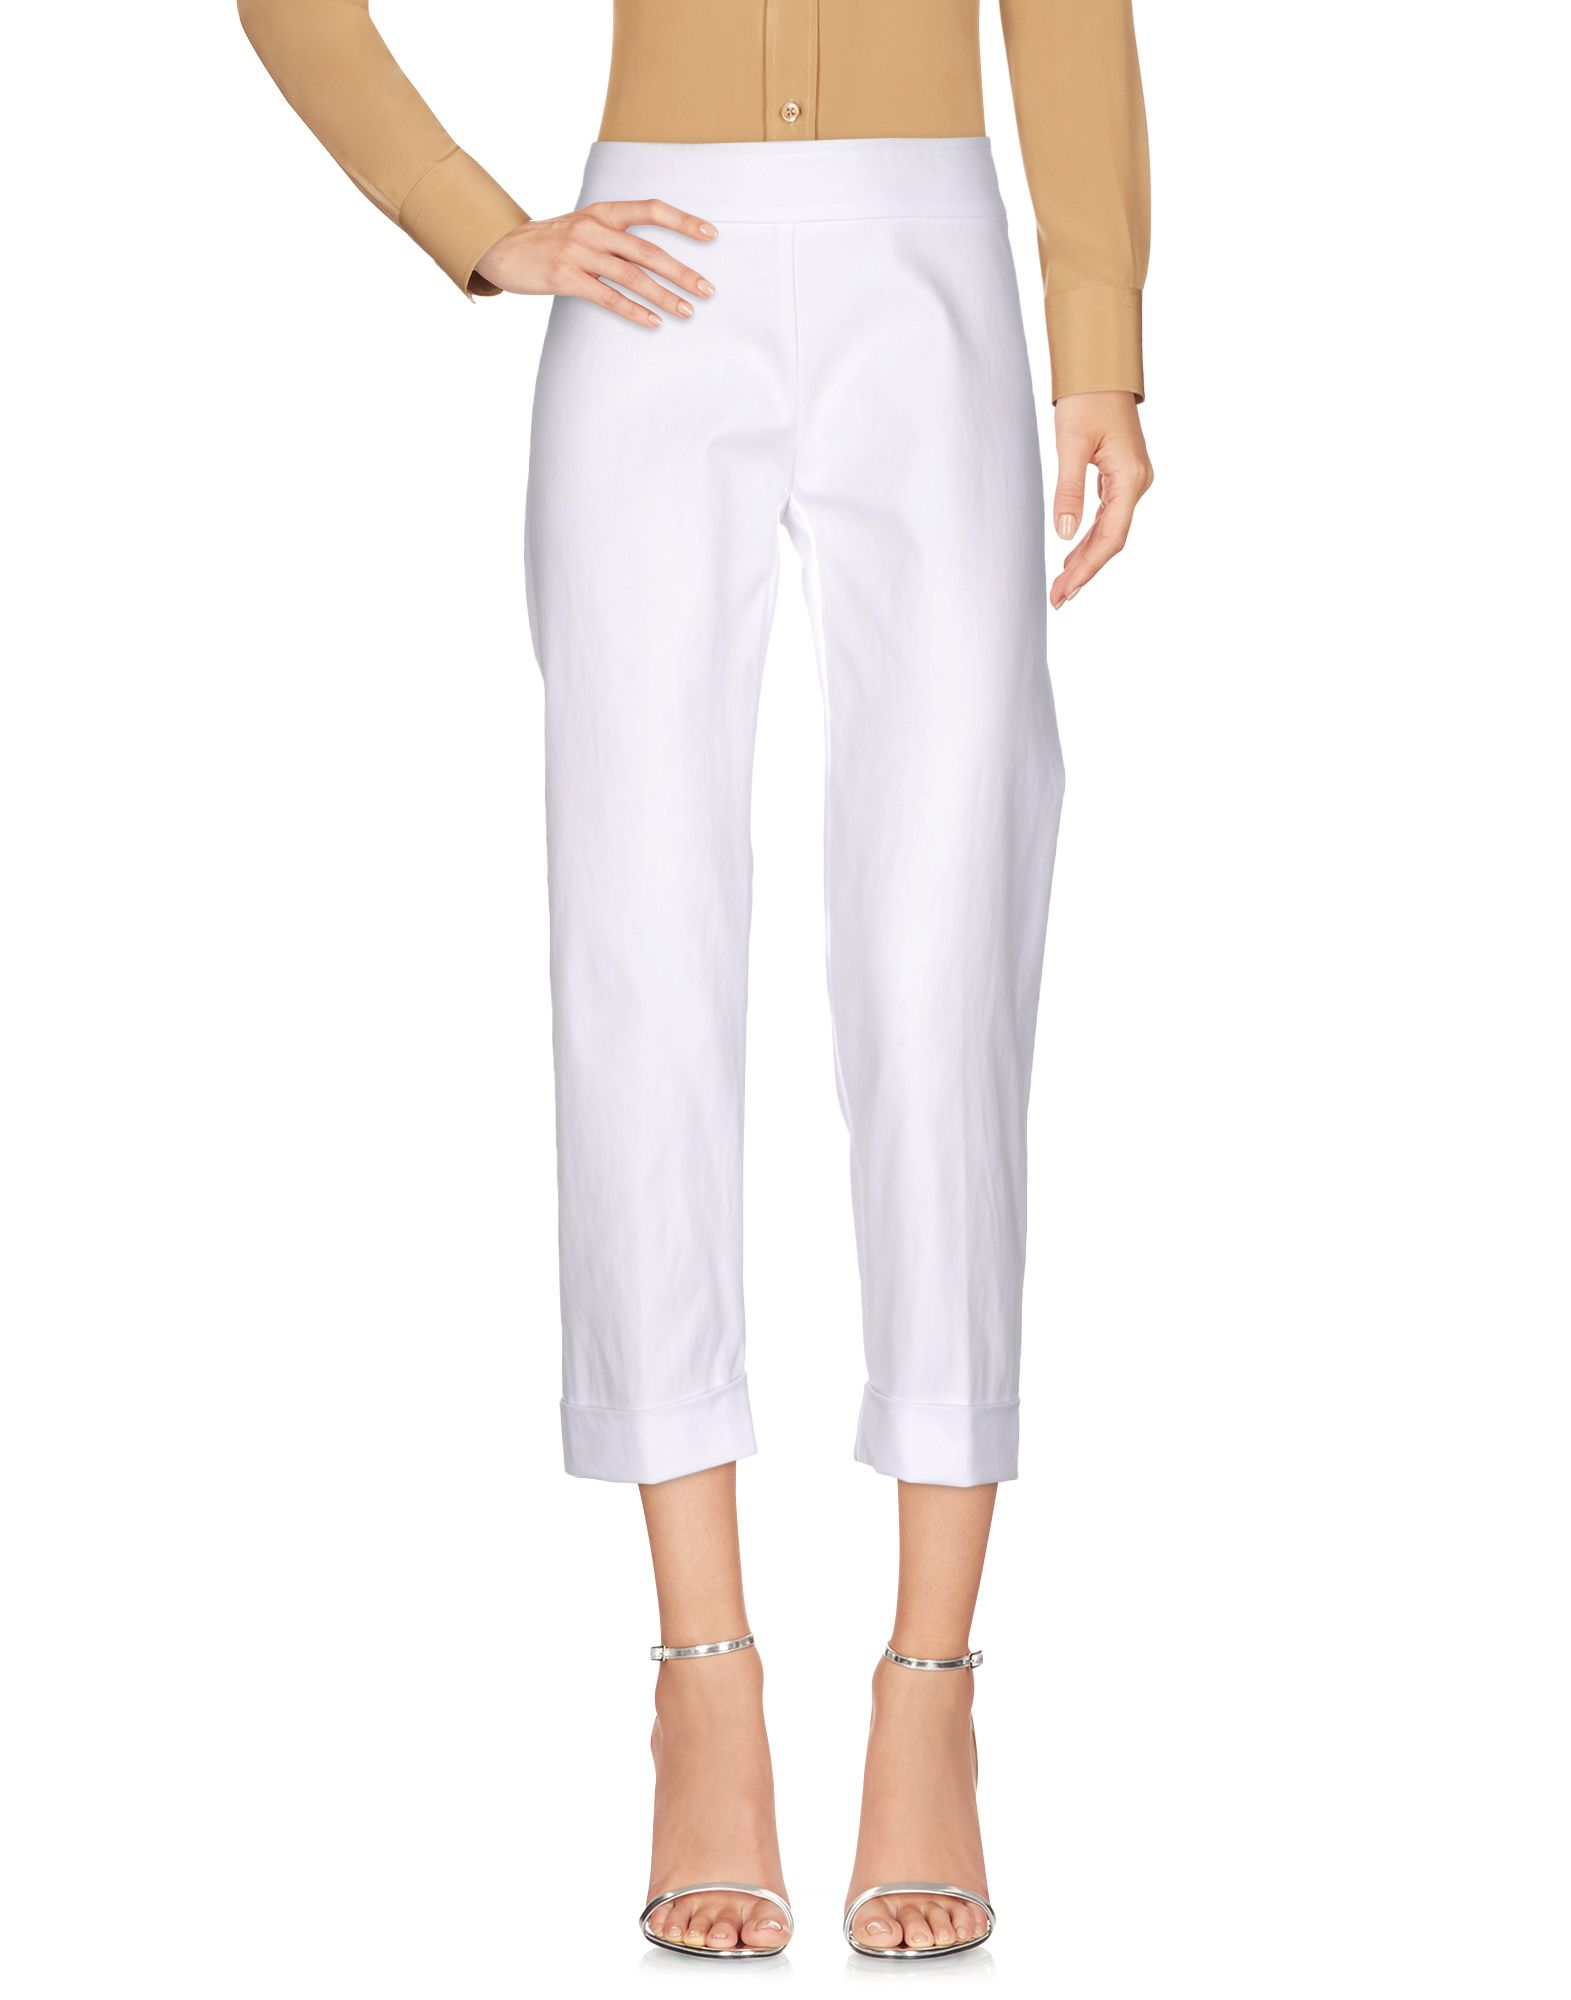 AVENUE MONTAIGNE Cropped Pants & Culottes in White